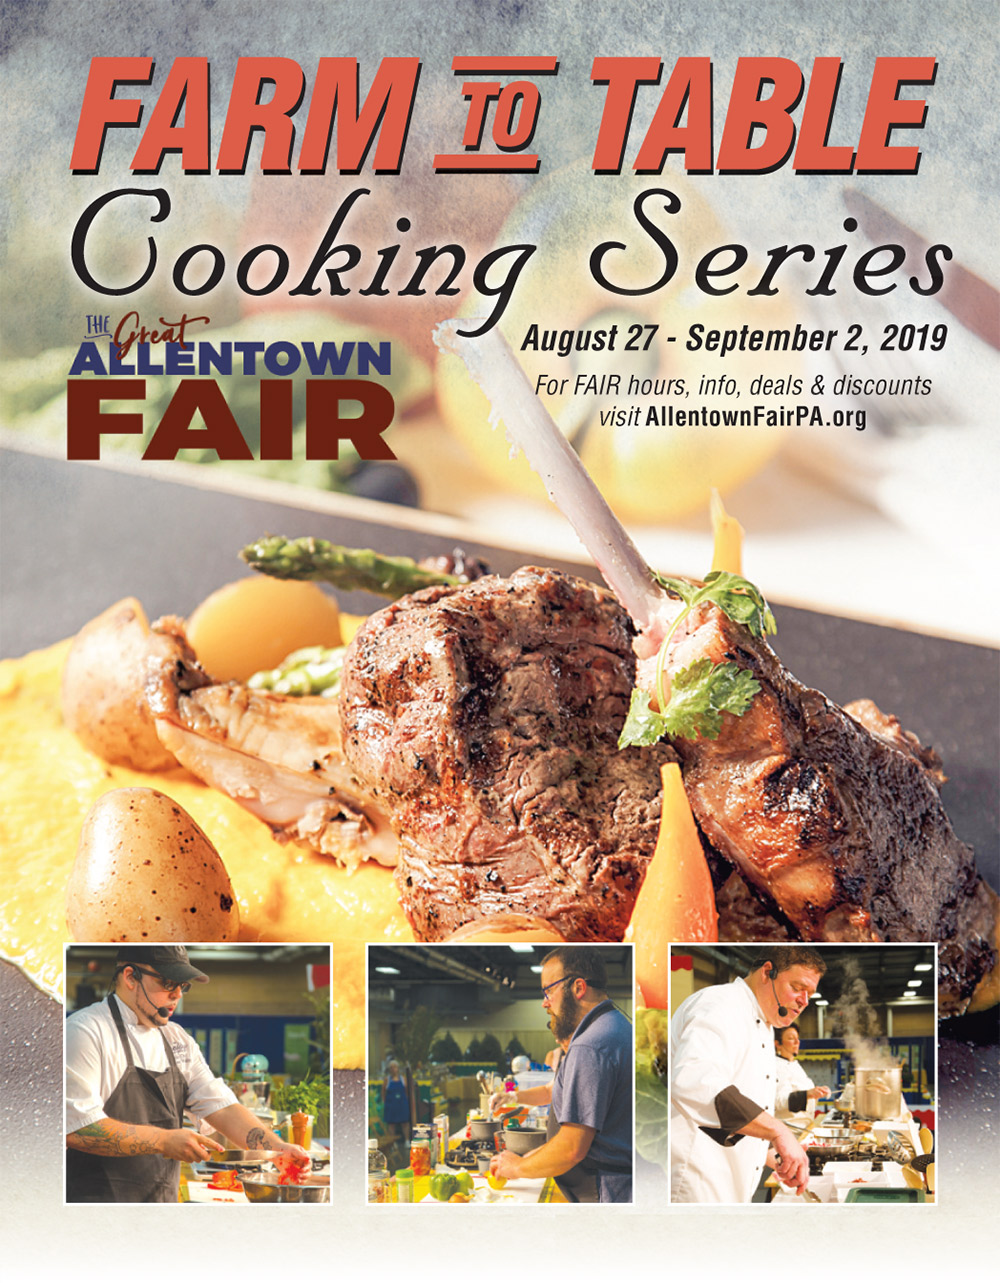 Farm to table 2019